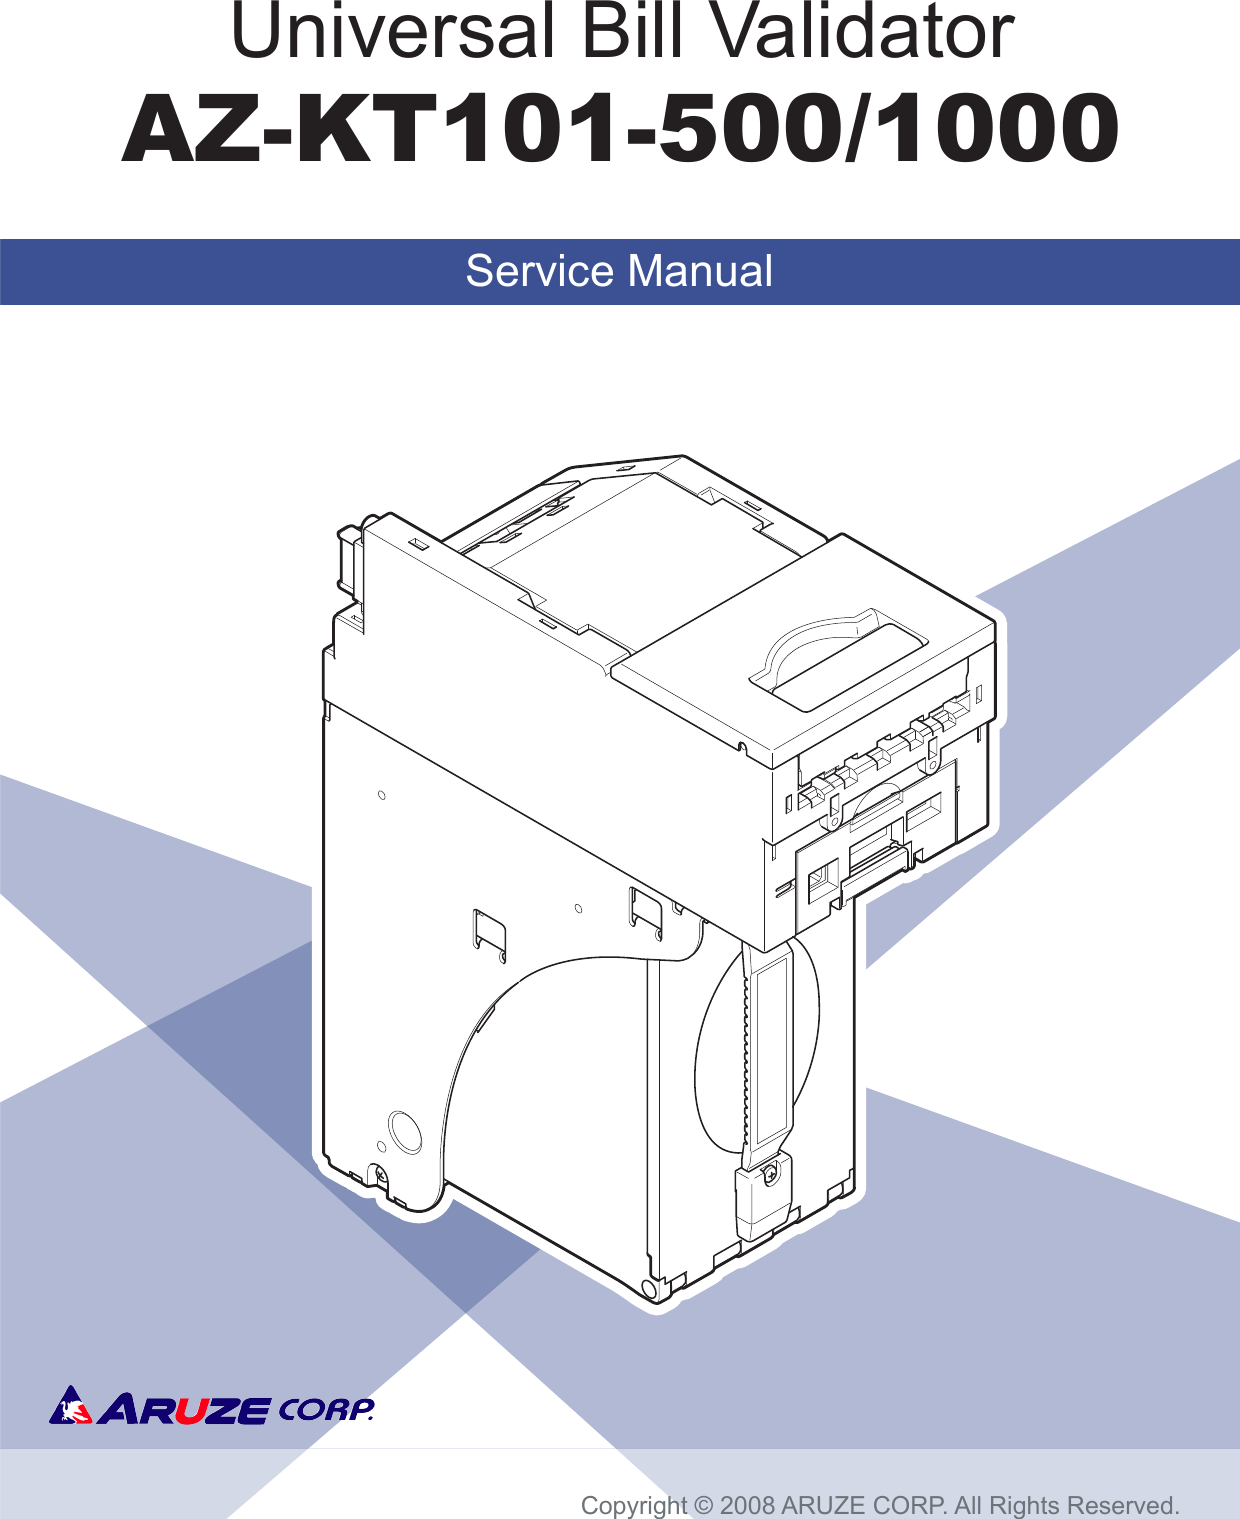 Universal Entertainment Azkt101 Bill Validator User Manual 1 Copyright 2008 Ab Cable And Wiring All Rights Reserved